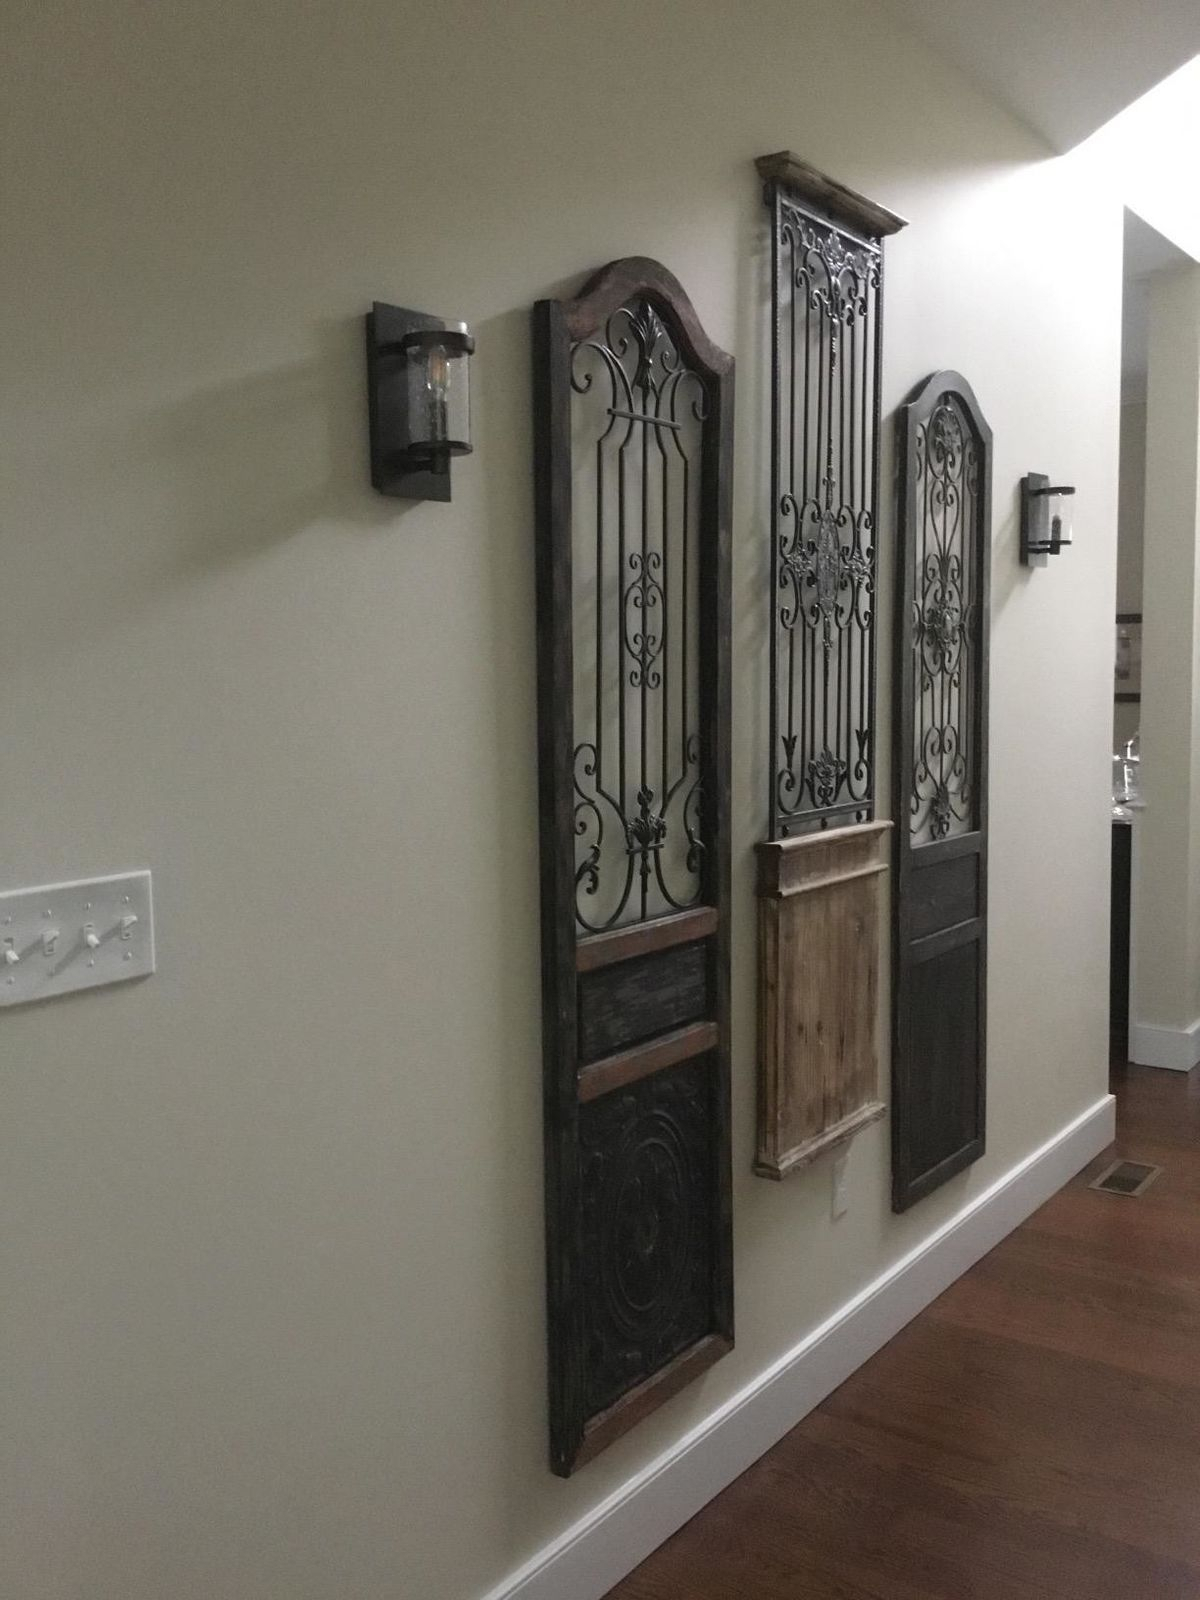 Current Iron Scroll Work Wood Wall Decor Garden Rustic Arched Sculpture Door Intended For Scroll Panel Wall Decor (Gallery 13 of 20)